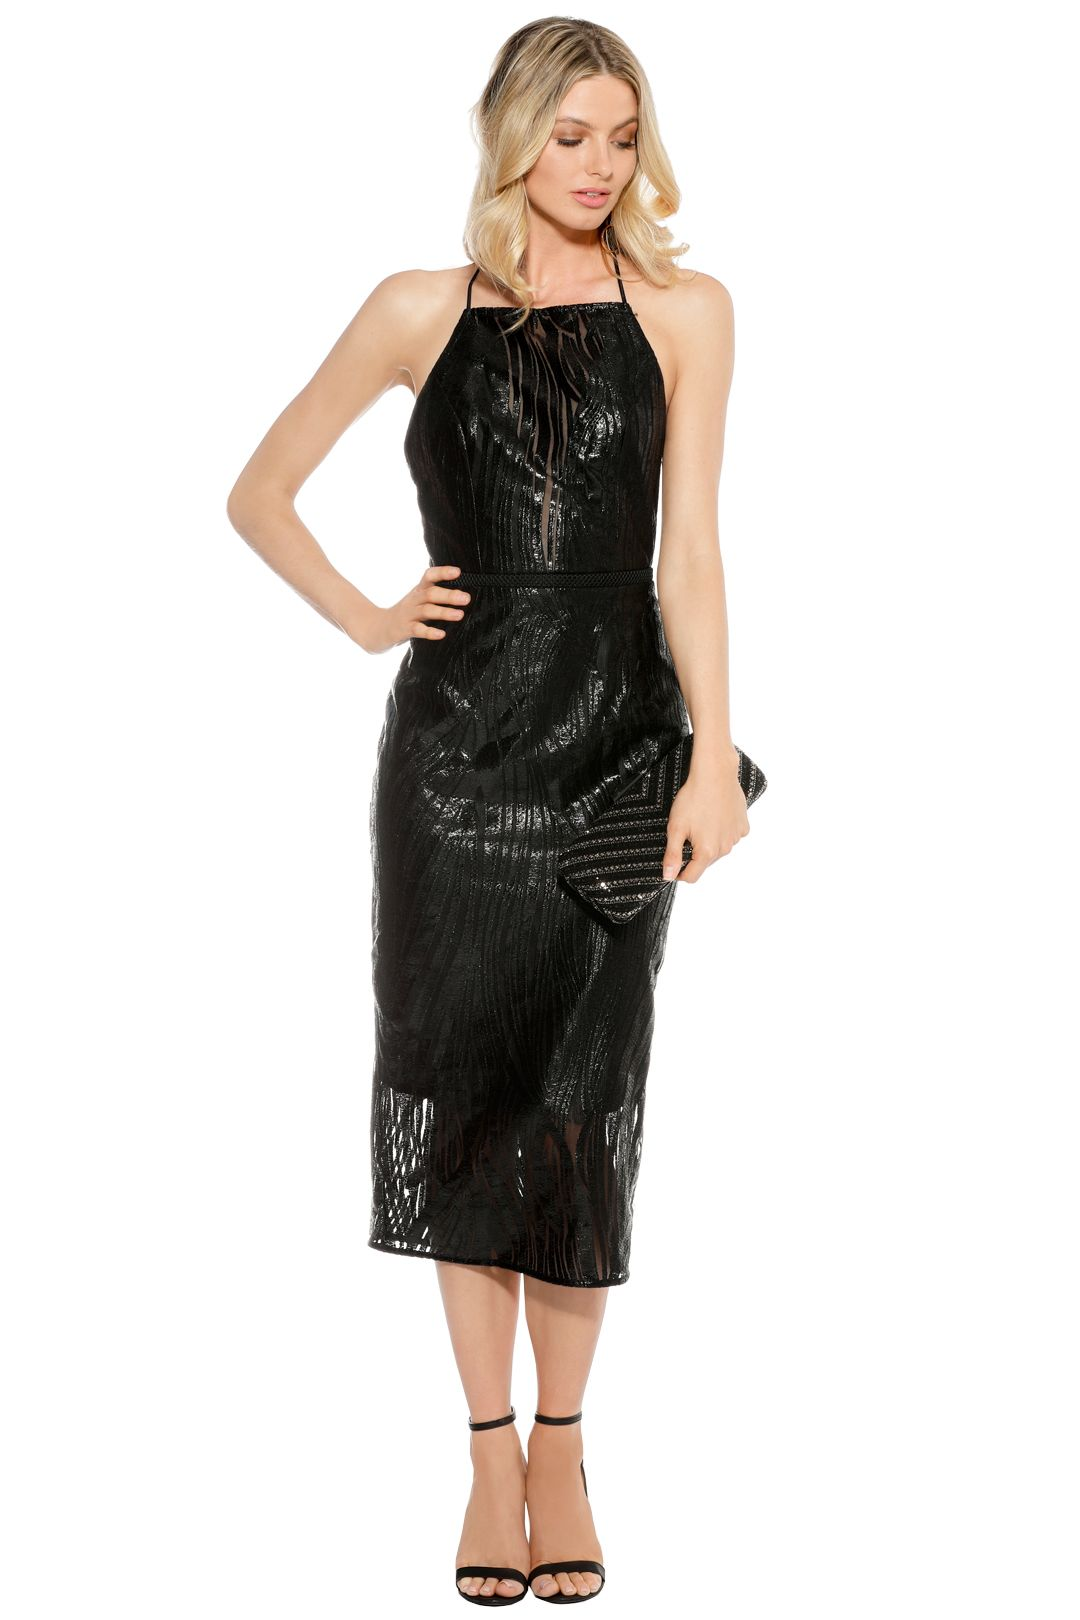 Manning Cartell - Zigzag Sheer Lace - Black - Front